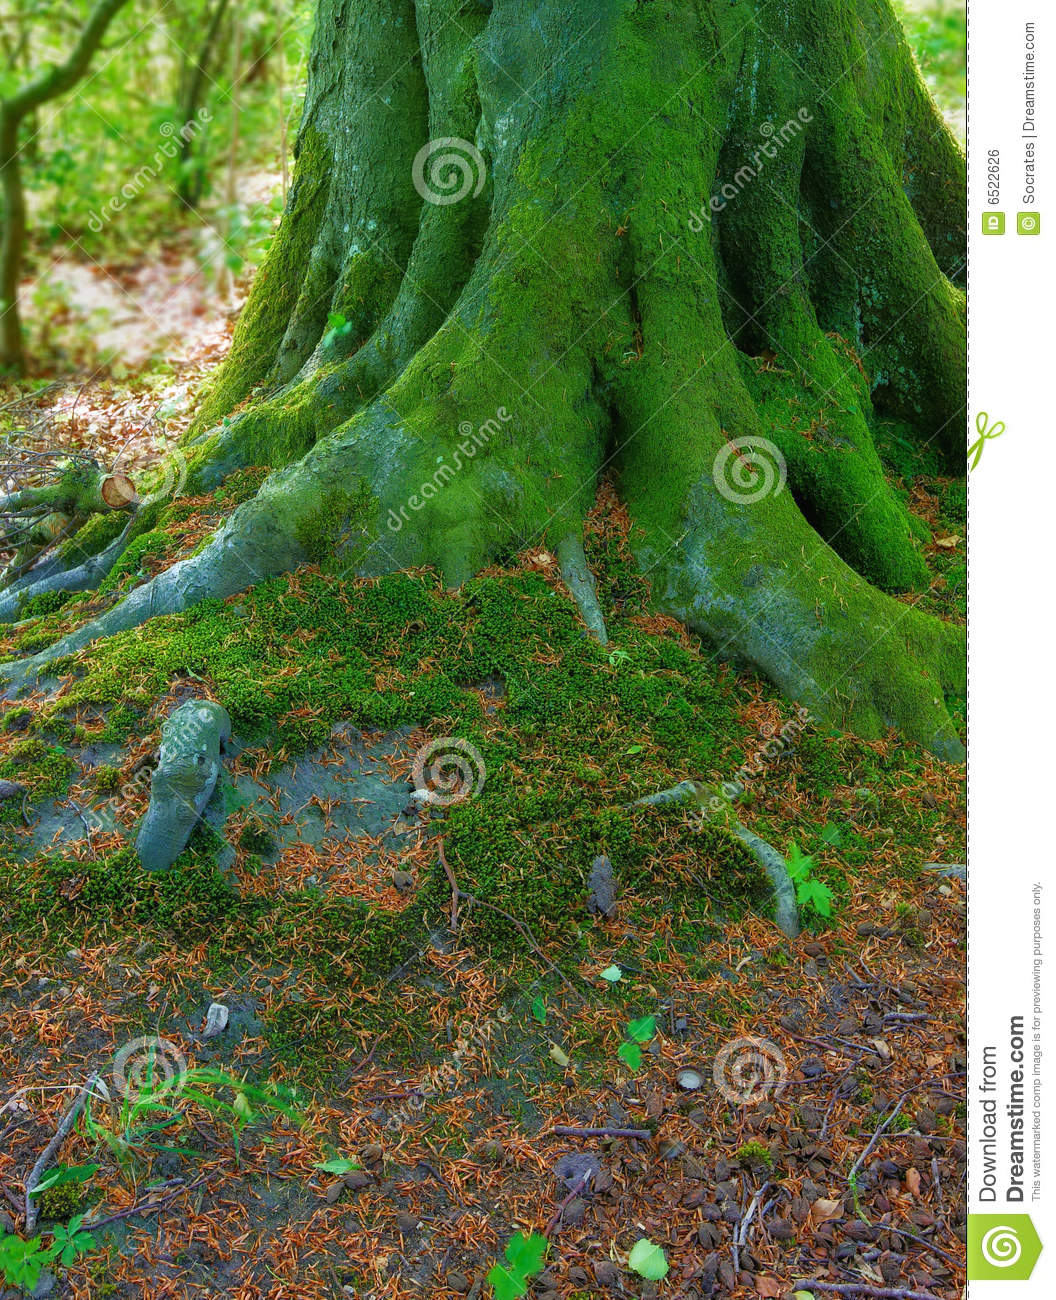 The Roots - Very Sharp And Detailed Royalty Free Stock ...